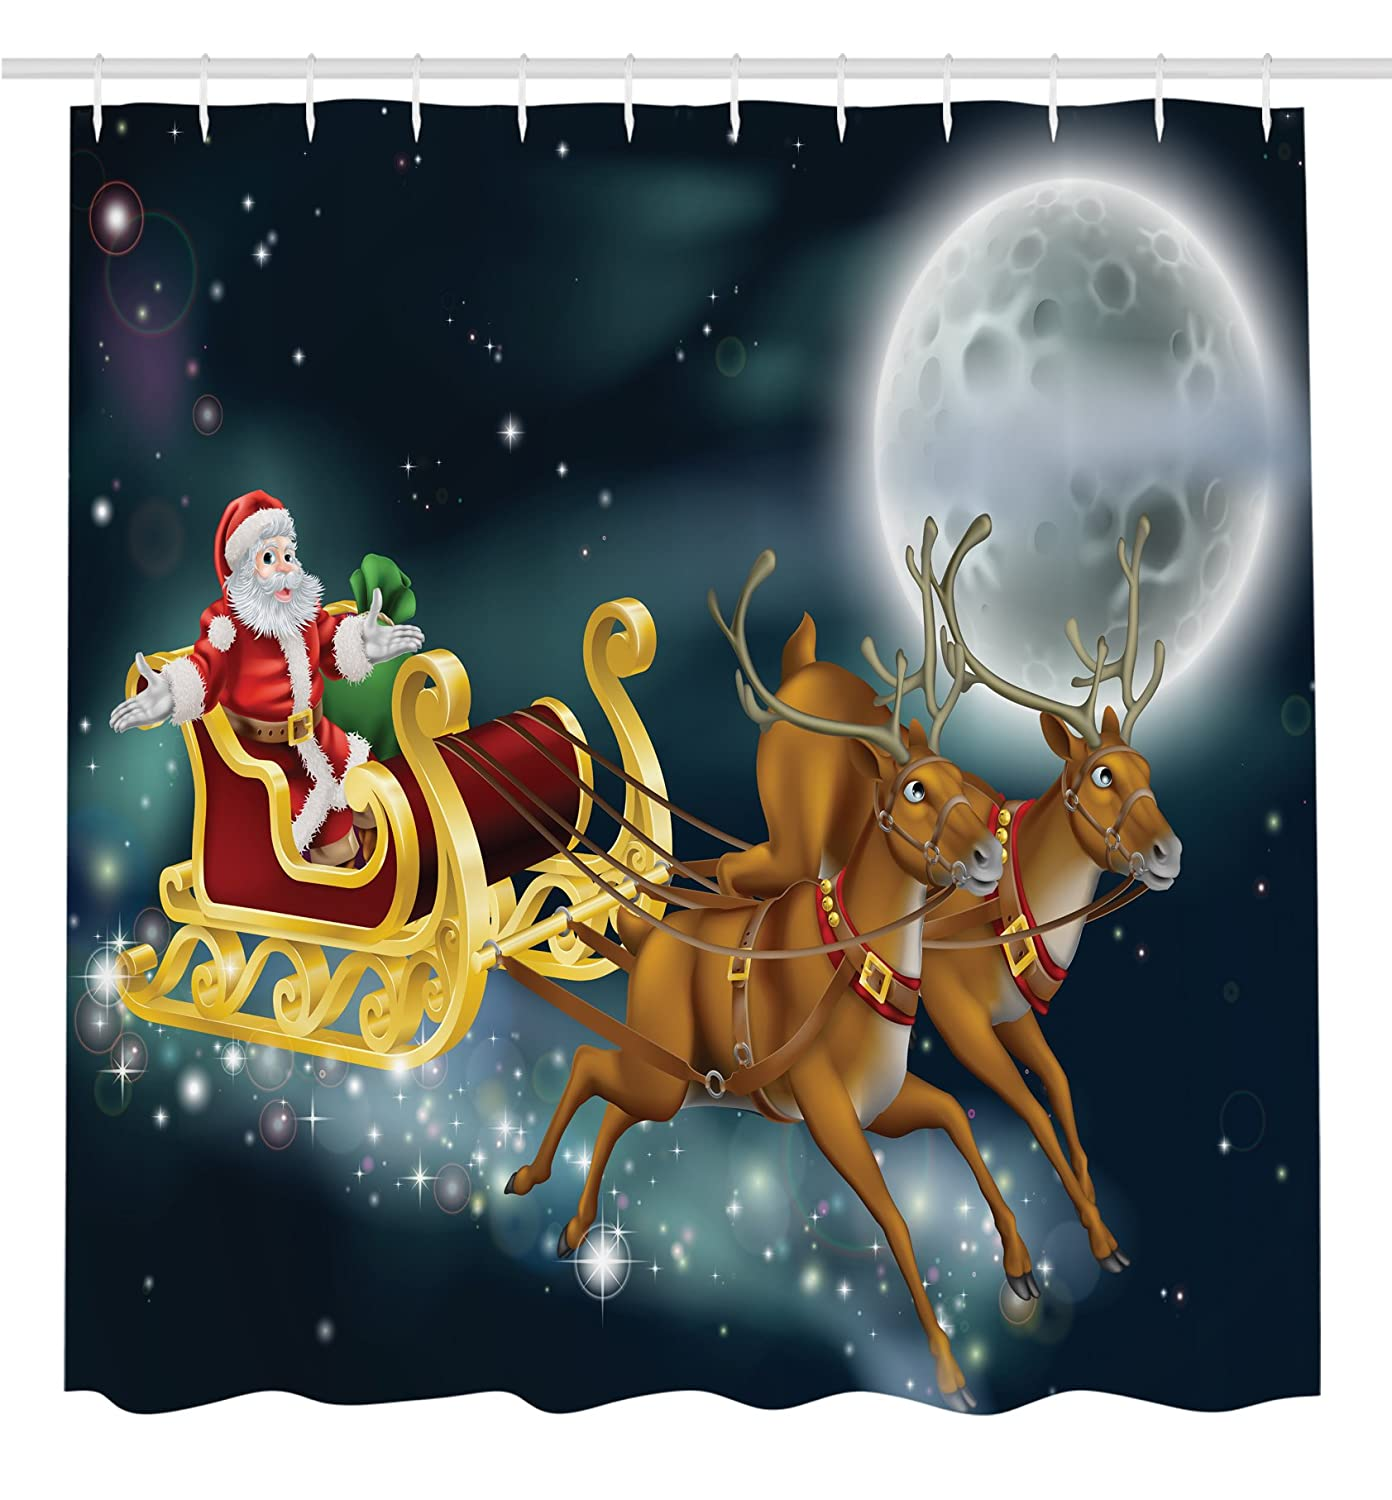 Santa with Reindeer in Sledge Flying Dark Magical Starry Night with Full Moon Fantasy Shower Curtain